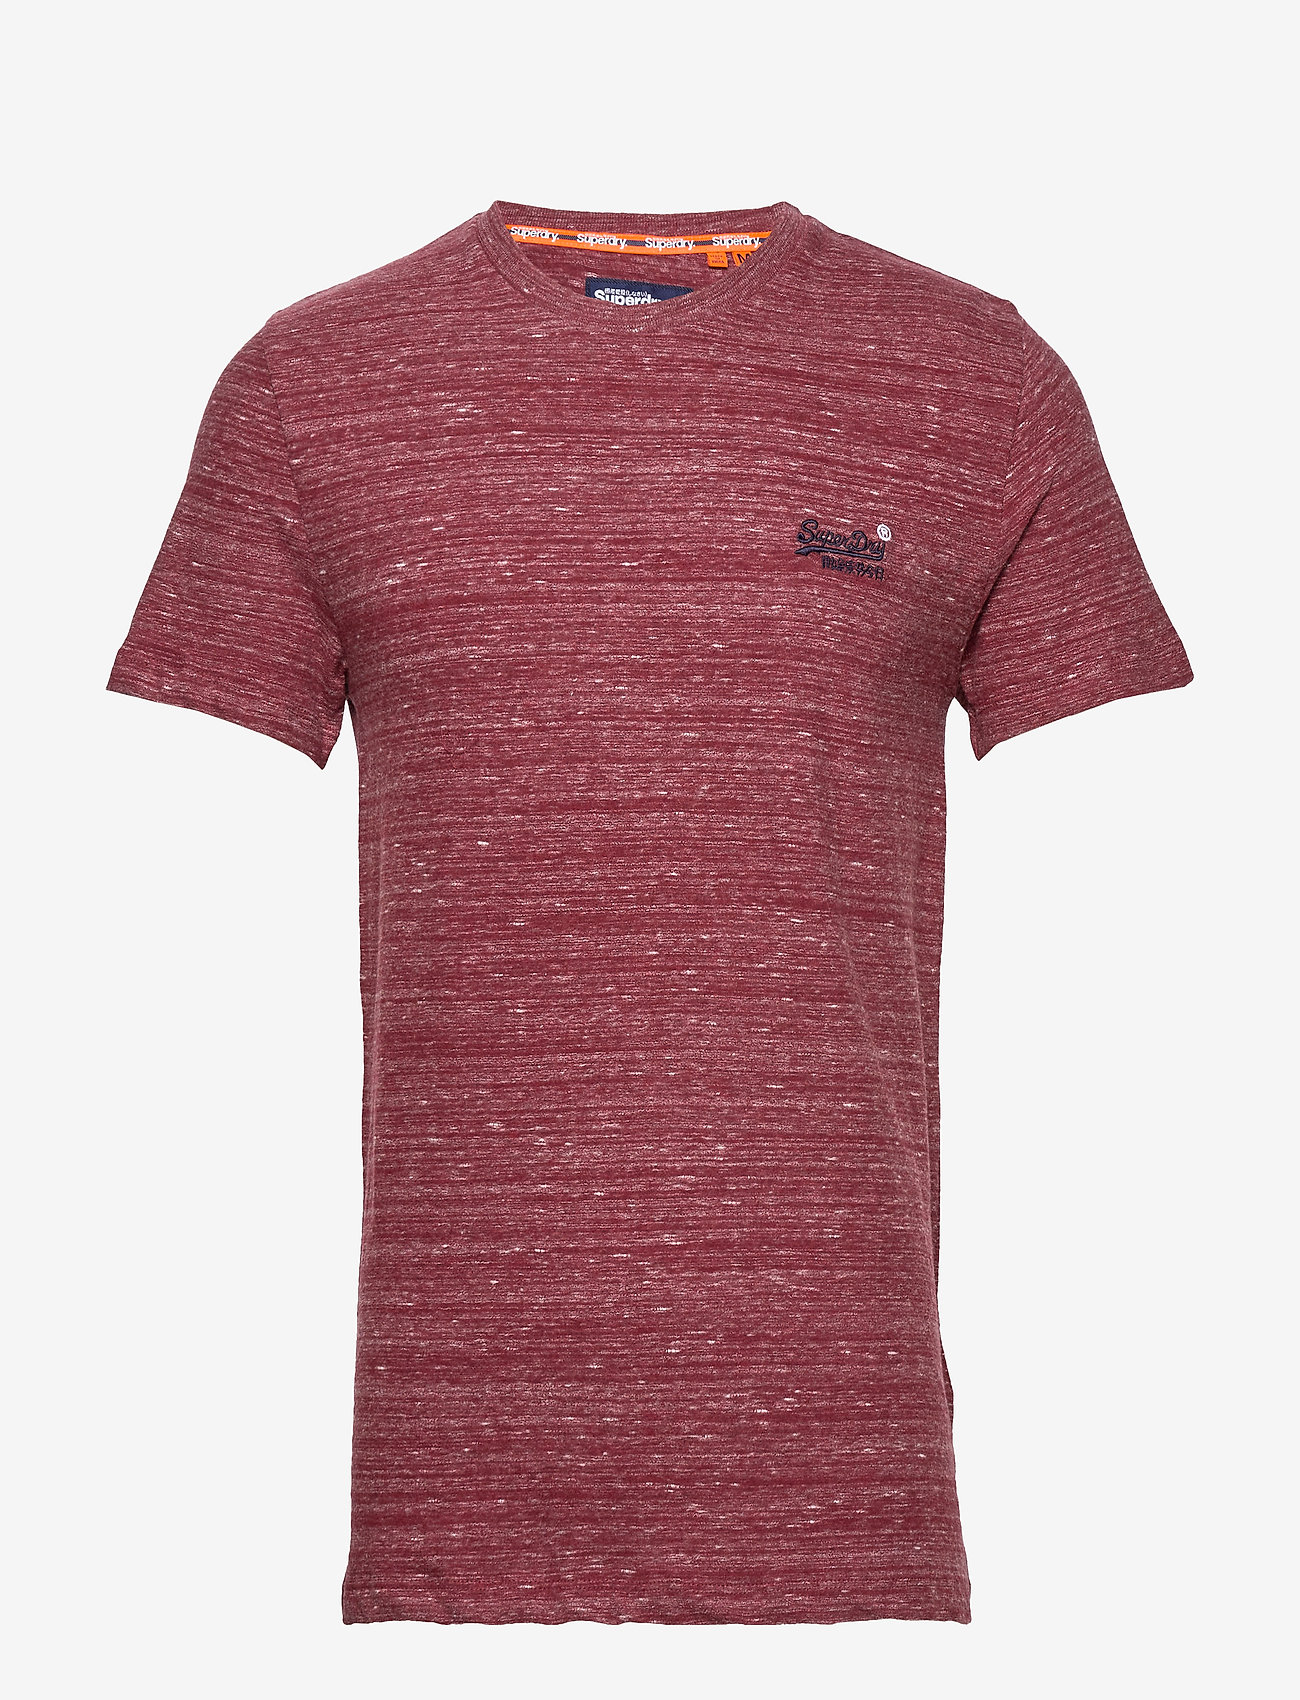 Superdry Ol Vintage Embroidery Tee - T-shirts BRICK RED SPACE DYE NQh0BbXH